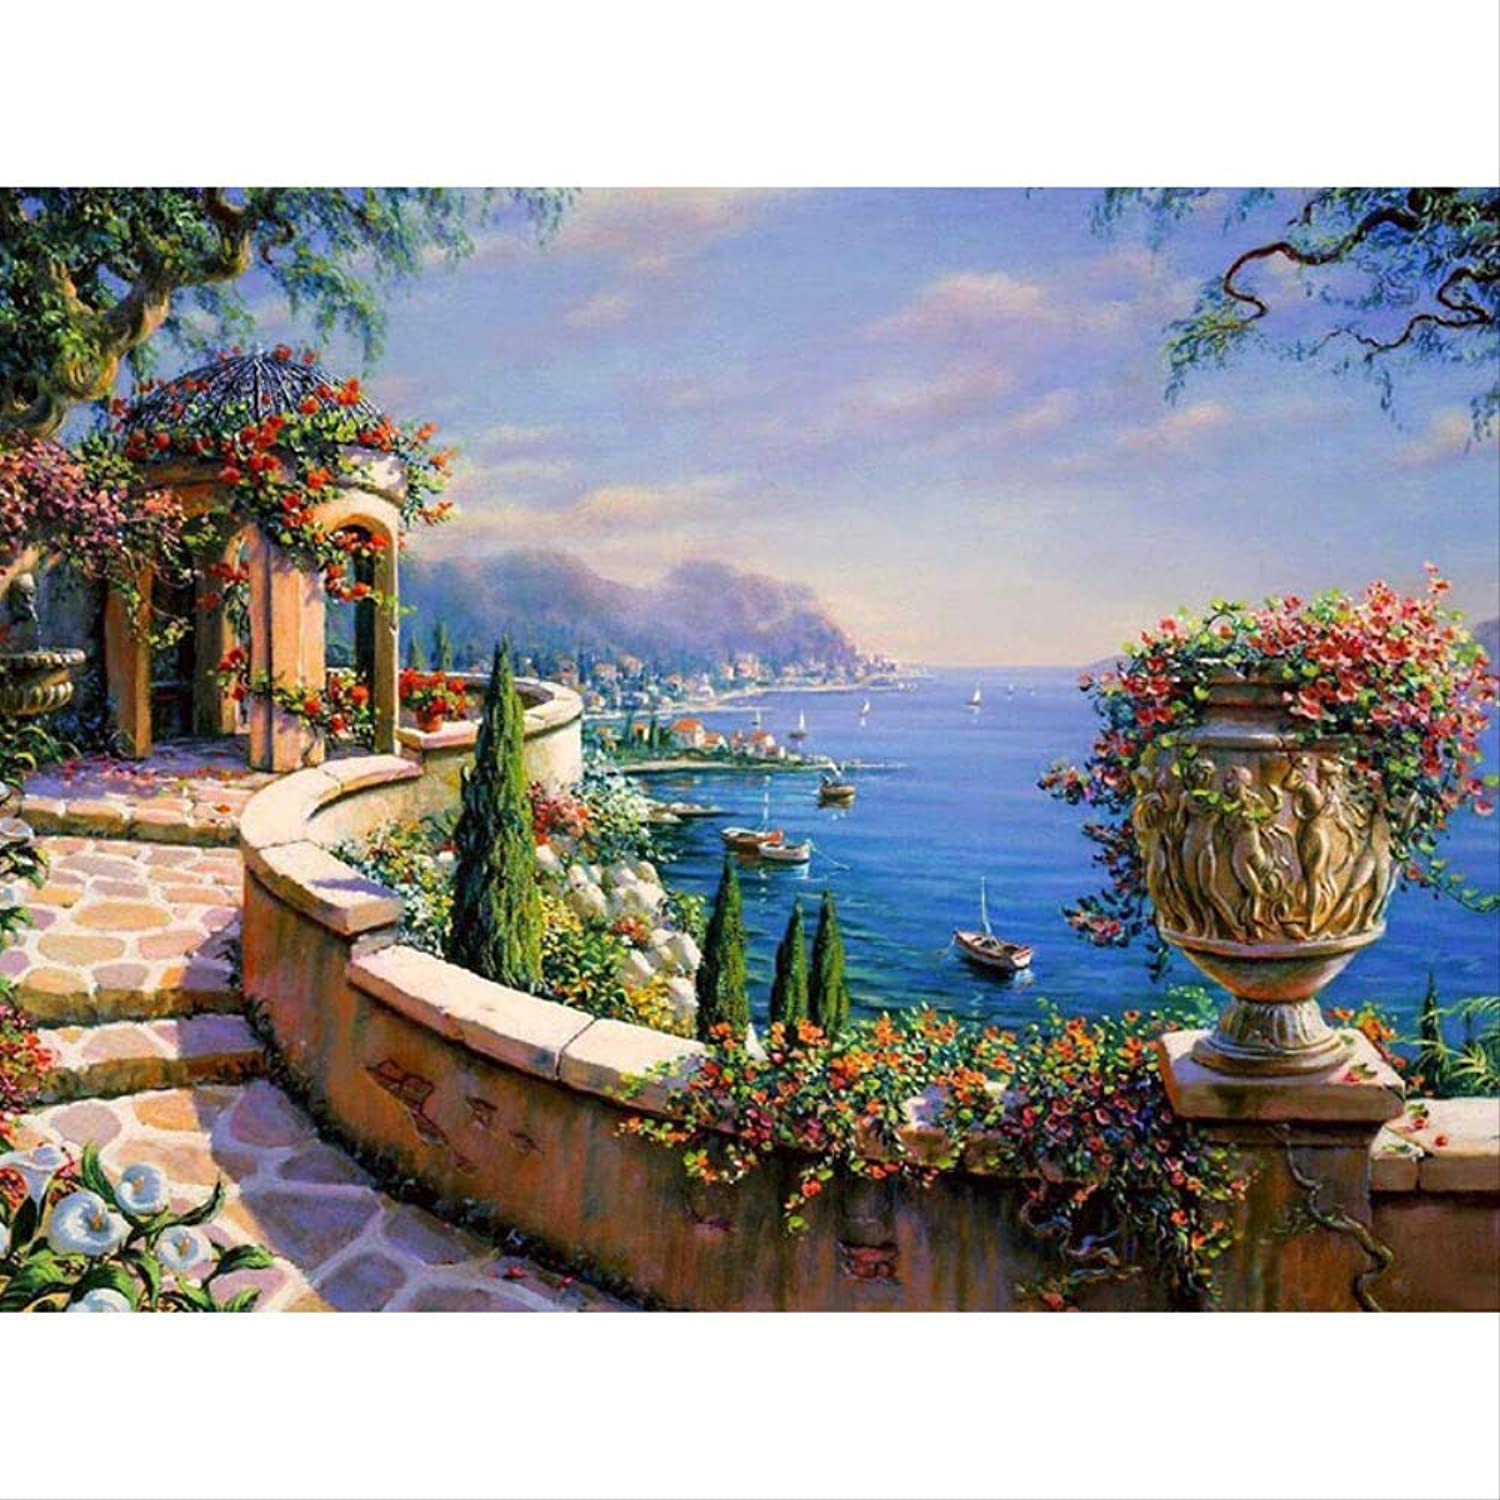 Adult Paint by Numbers Kits Yuan Ou The Mediterranean Sea DIY Painging by Numbers Kit coloring Picture Wall Art Canvas Painting Home Decor Artwork 60x75cm DIY Frame